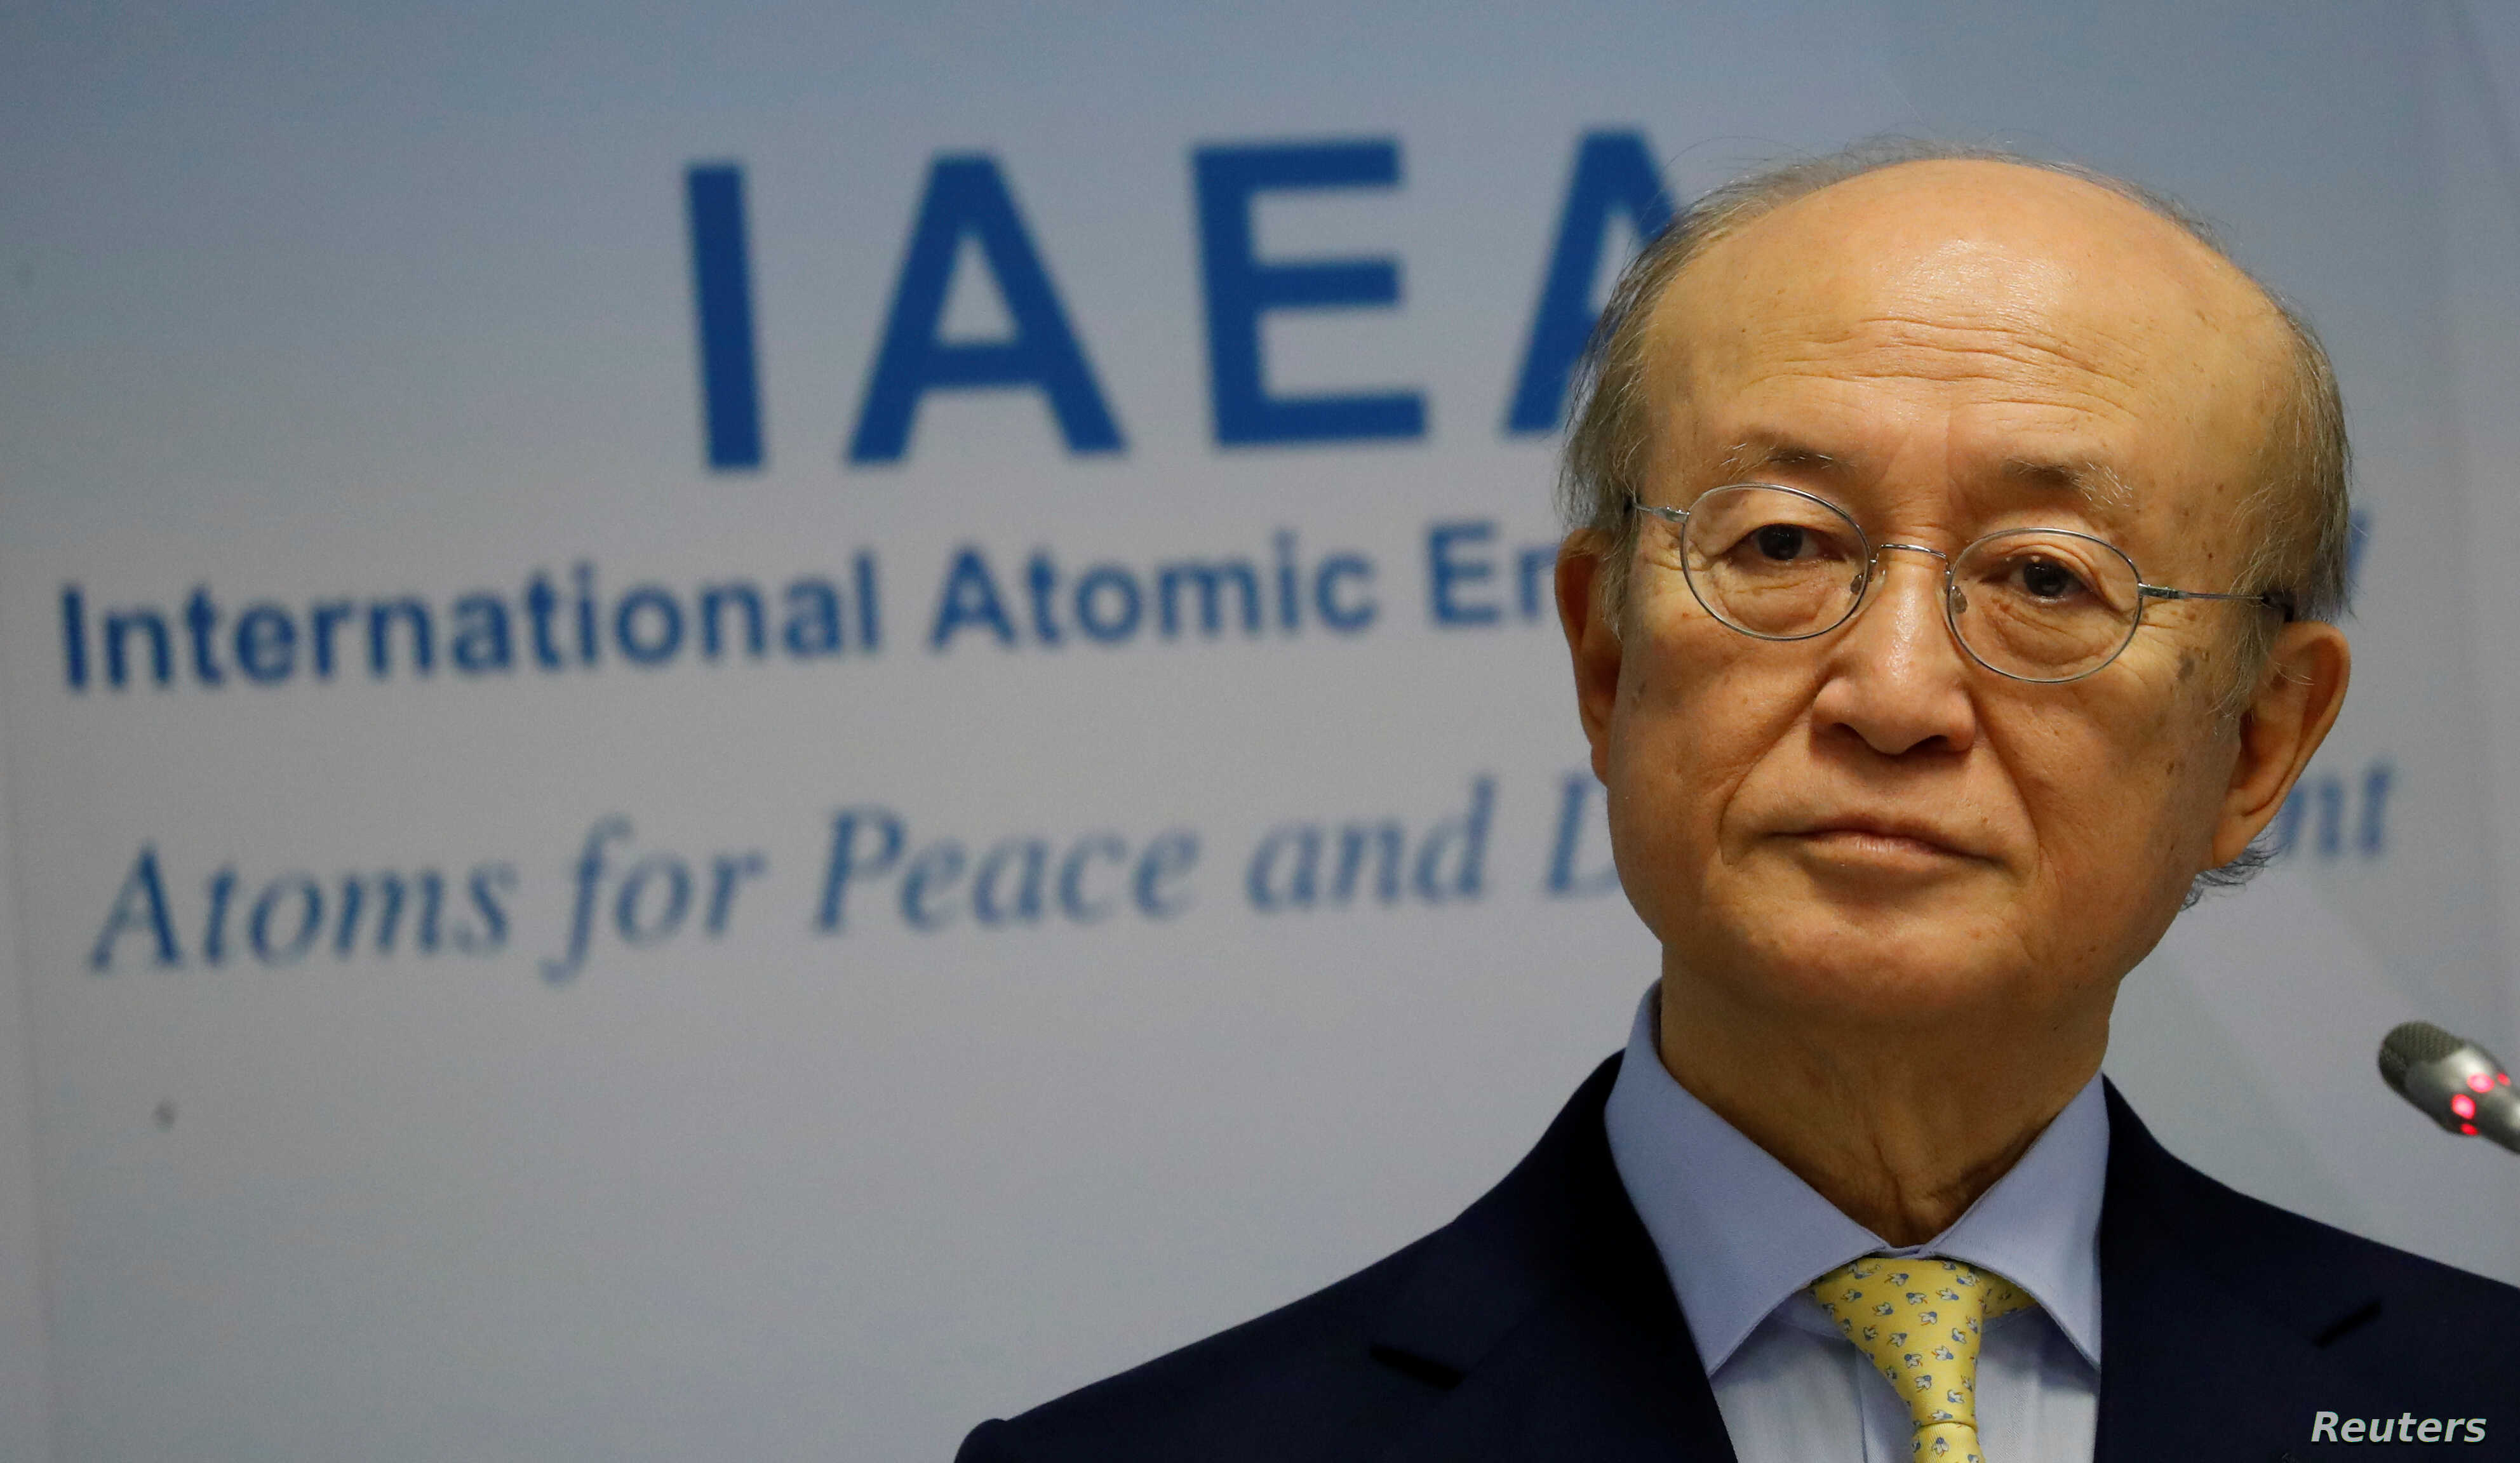 FILE - International Atomic Energy Agency Director General Yukiya Amano addresses a news conference during a board of governors meeting at the IAEA headquarters in Vienna, March 4, 2019. The agency said Friday that Iran is in compliance with its nucl...